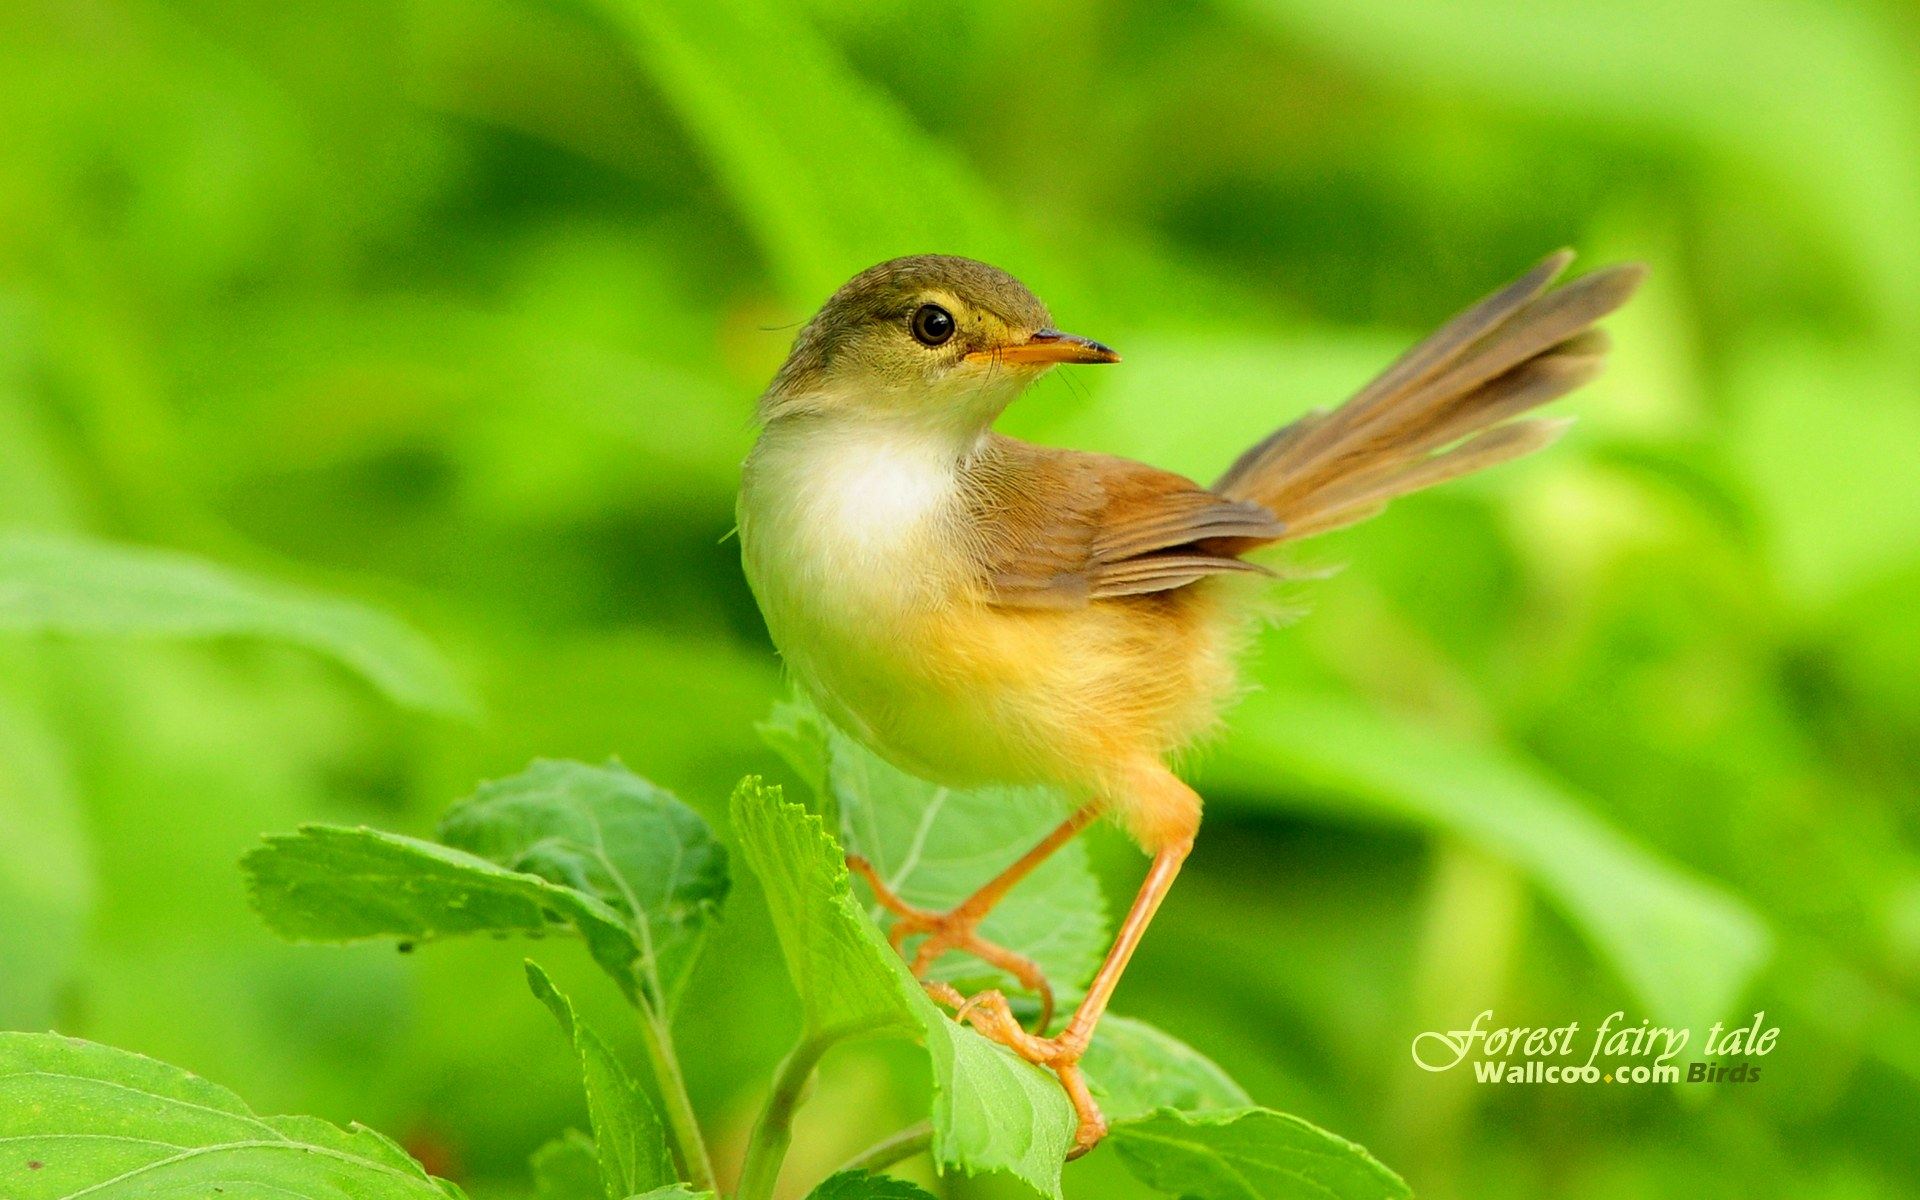 birds, wallpapers, plain, prinia, little, gorgeous, animal, cute